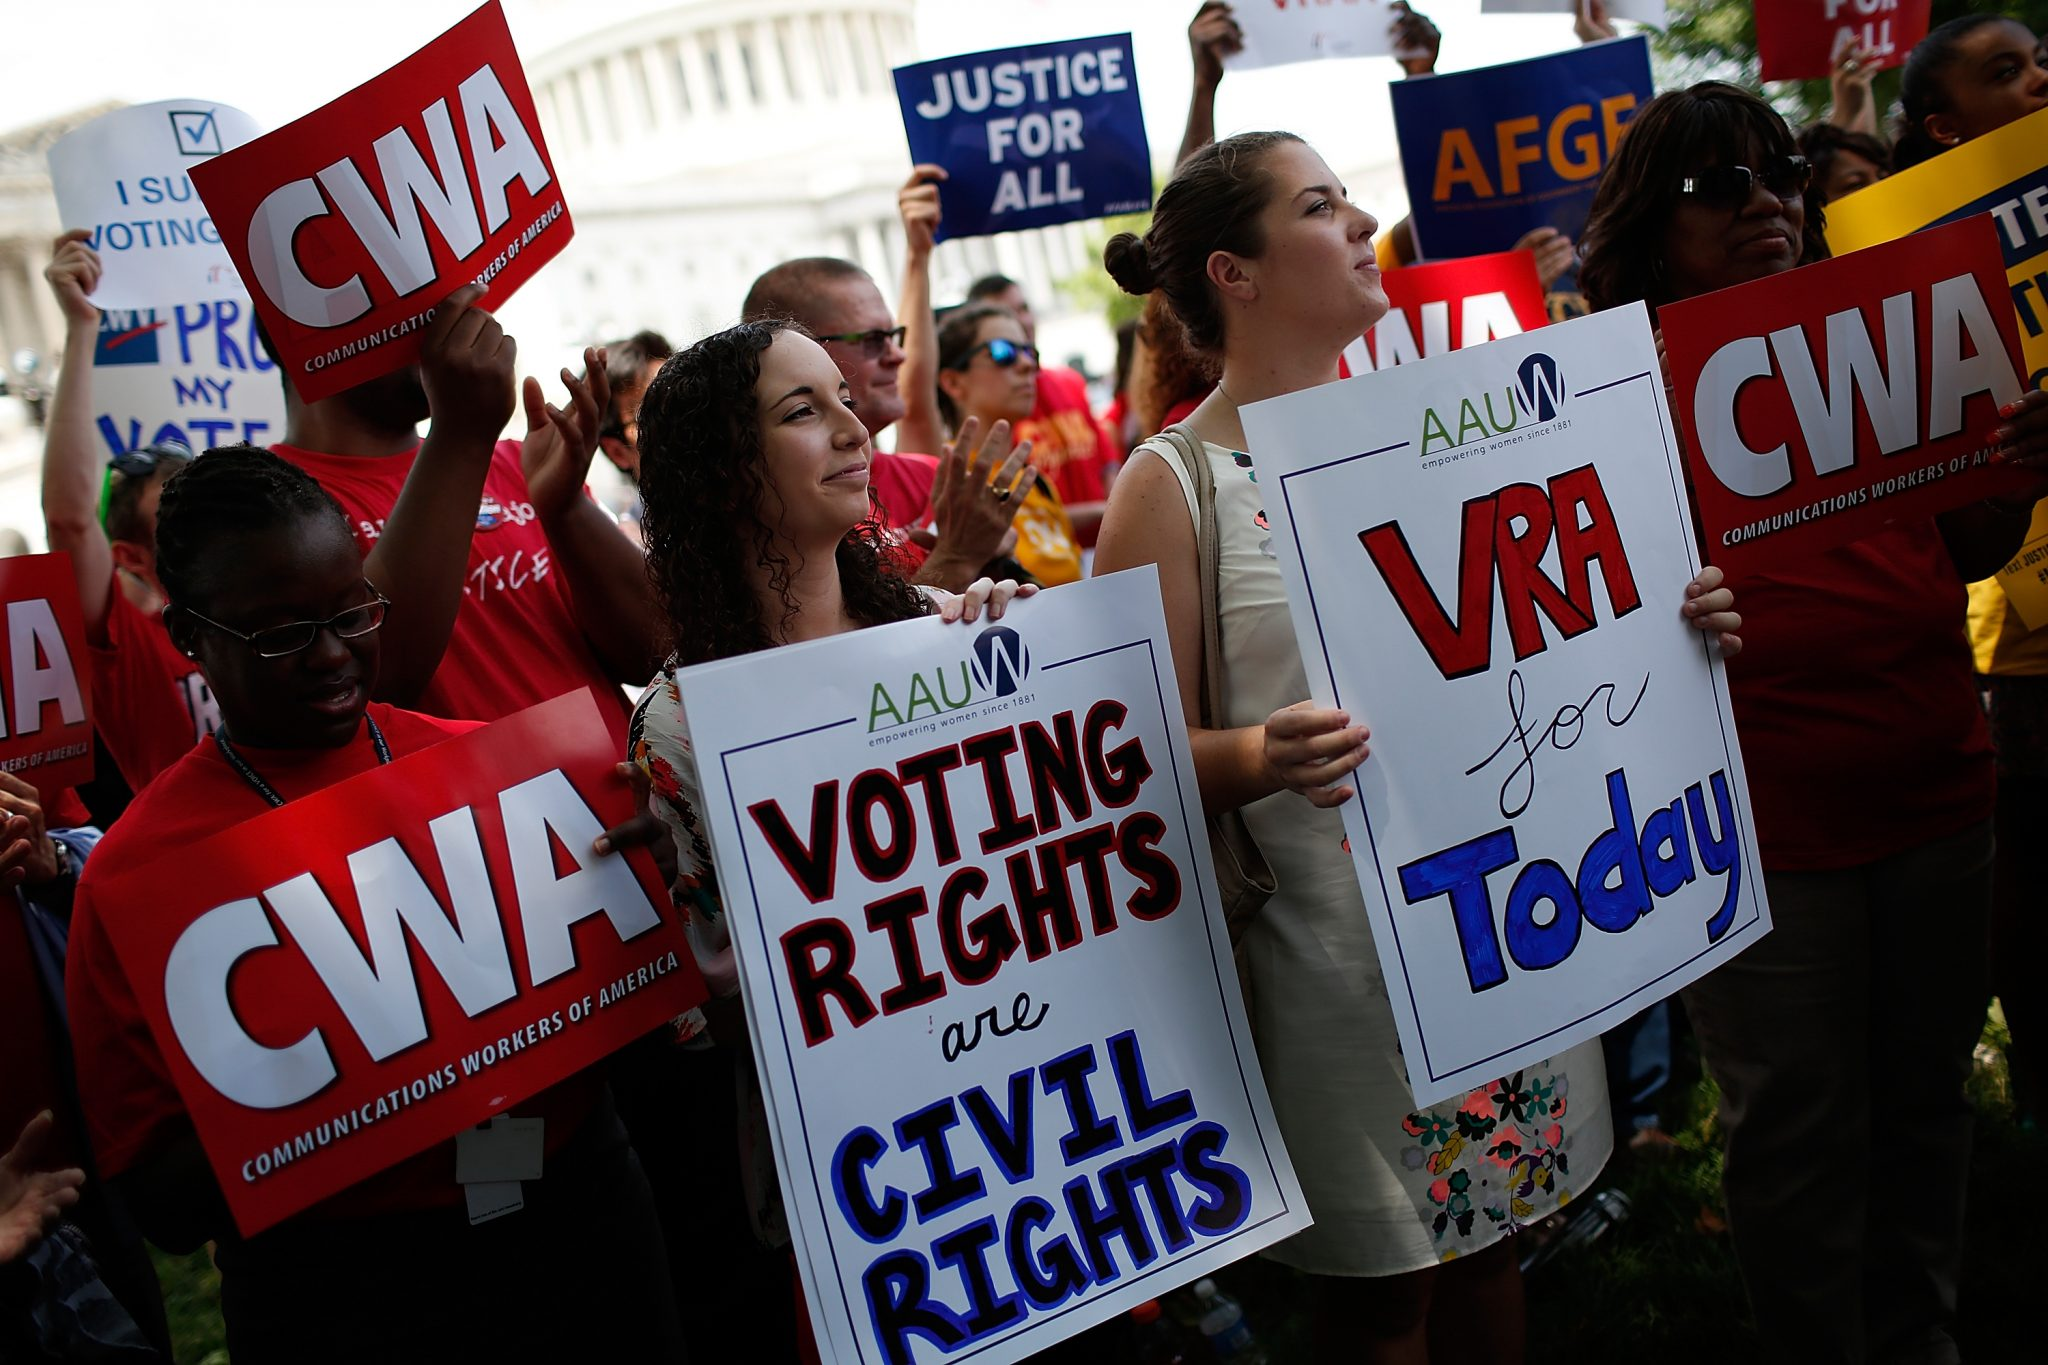 Supreme Court ruling on Voting Rights Act opened floodgates for new restrictions